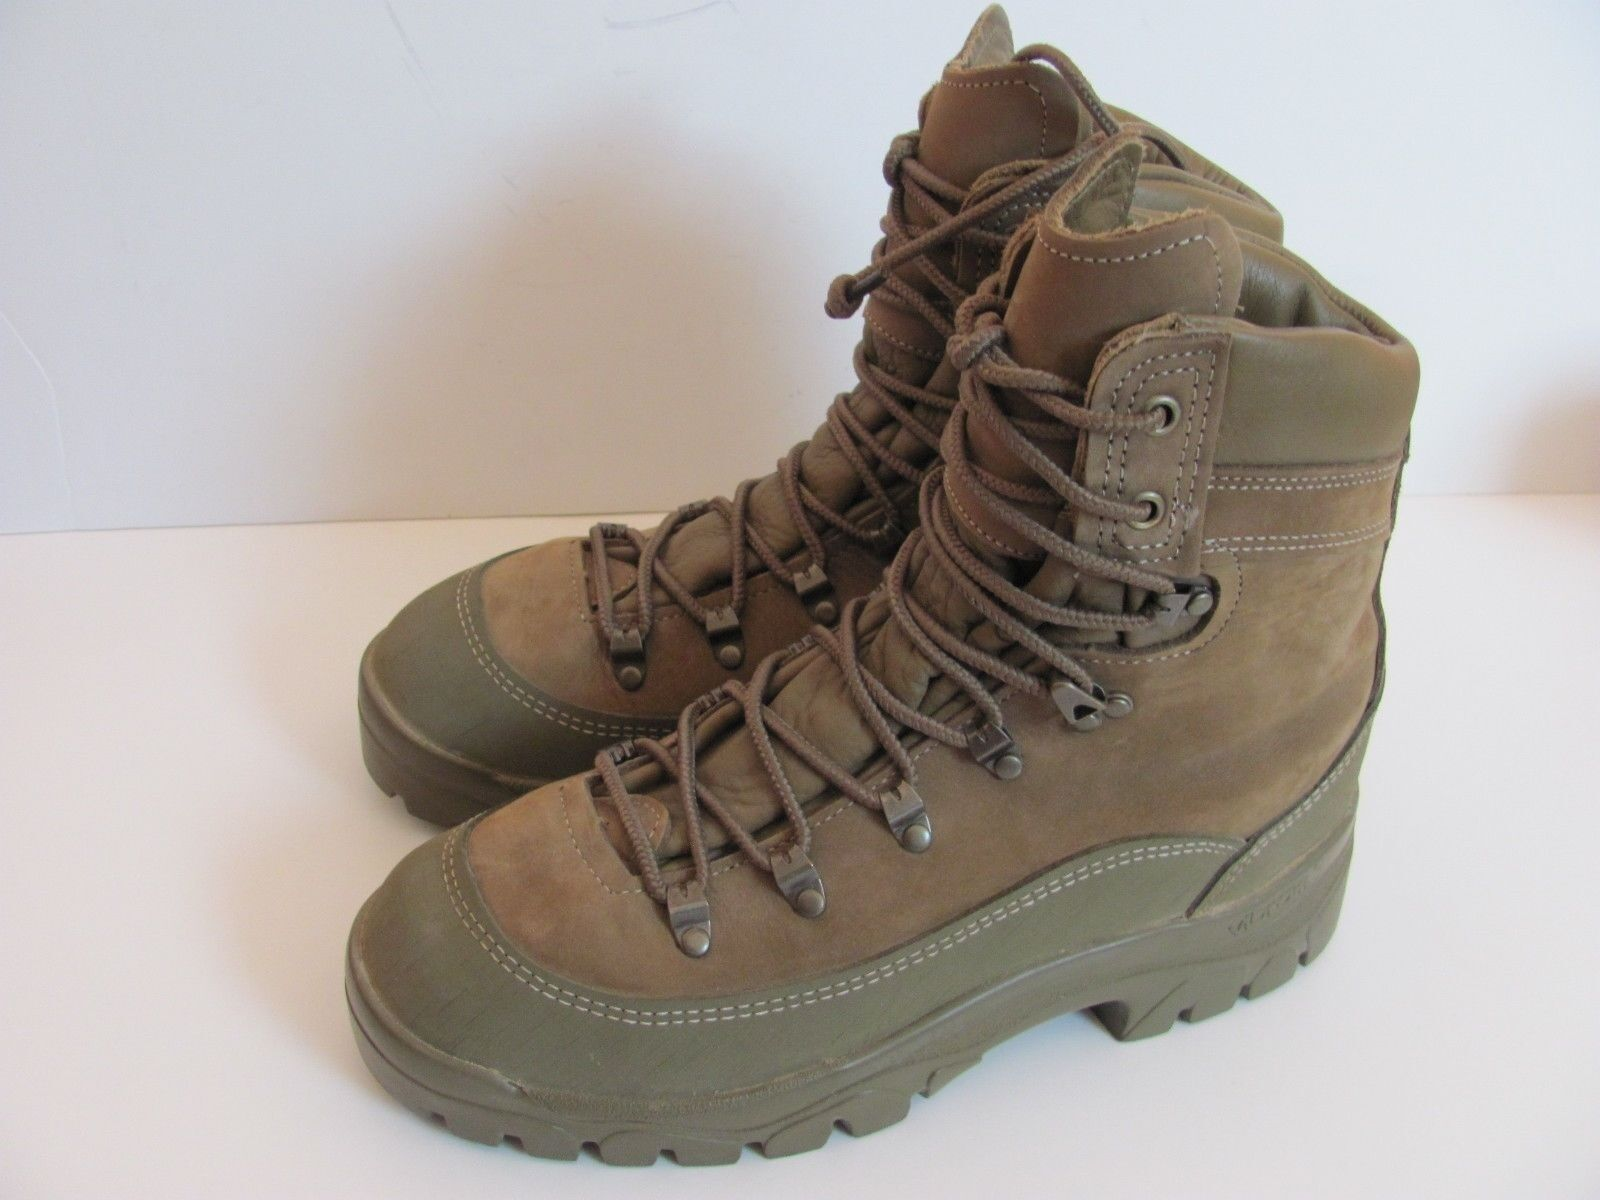 Belleville NEW  MCB 950 Gore-Tex Mountain Tan Hiking Hunting Boot  Men's US 8.5R